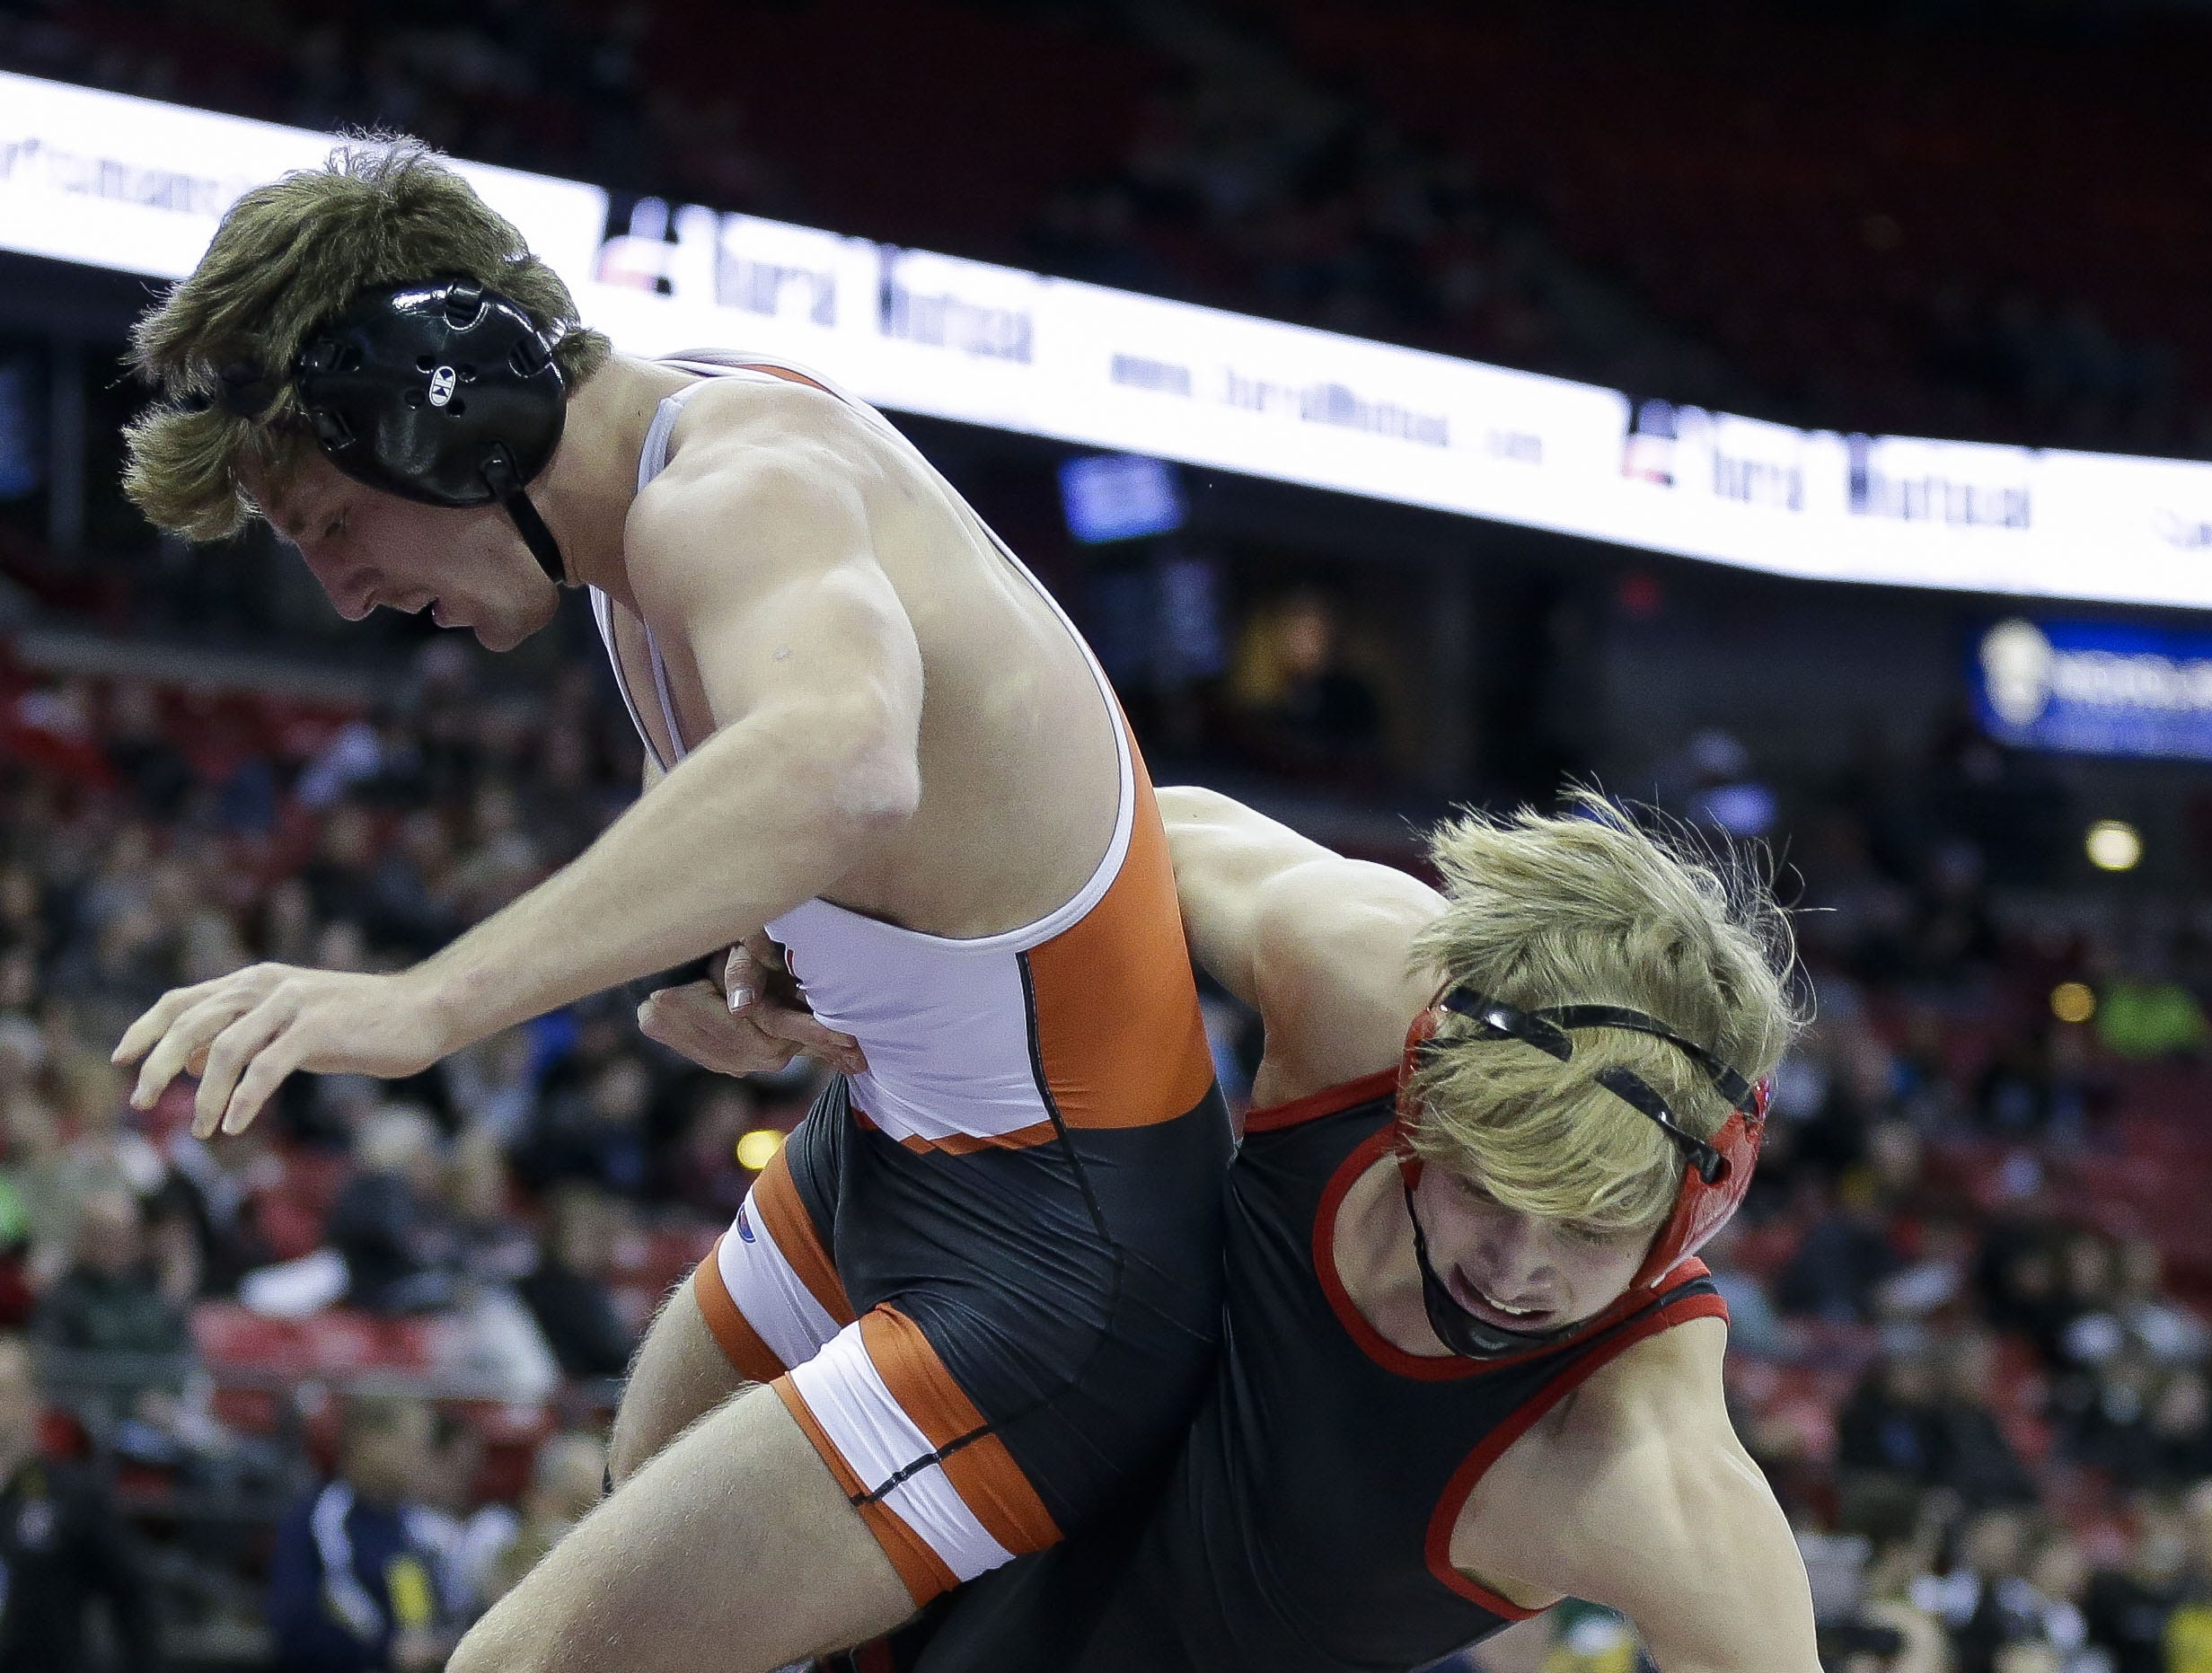 Kimberly's Tucker Smith takes down Marshfield's Caden Pearce out of bounds in a Division 1 145-pound preliminary match during the WIAA state wrestling tournament on Thursday, February 21, 2019, at the Kohl Center in Madison, Wis. Tork Mason/USA TODAY NETWORK-Wisconsin